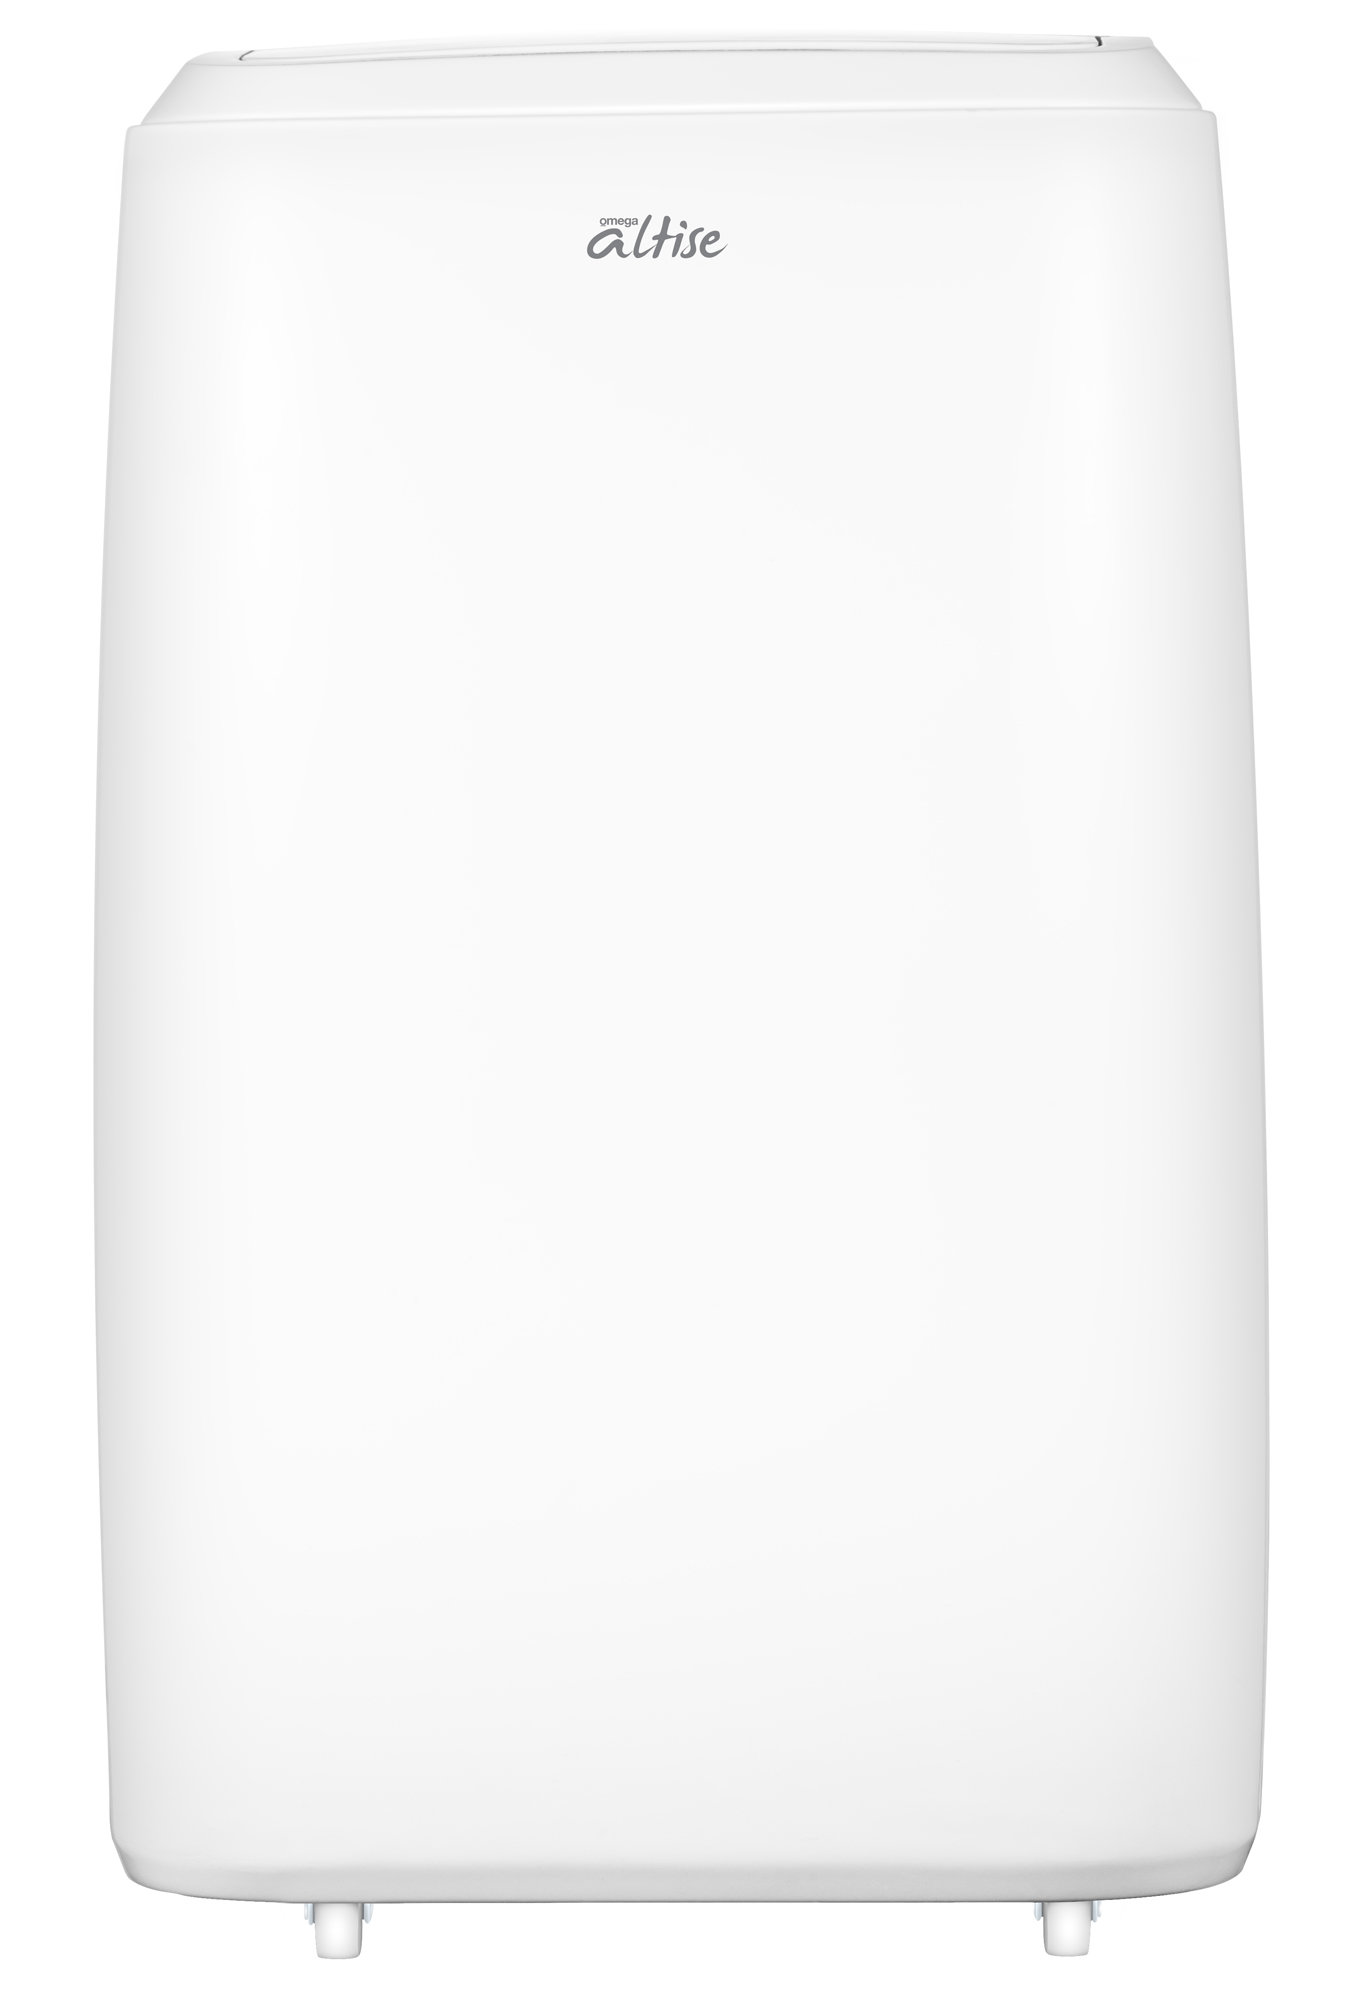 Omega Altise OAPC187 5.2kW Slimline Portable Air Conditioner - FREE Delivery & Price Match* image